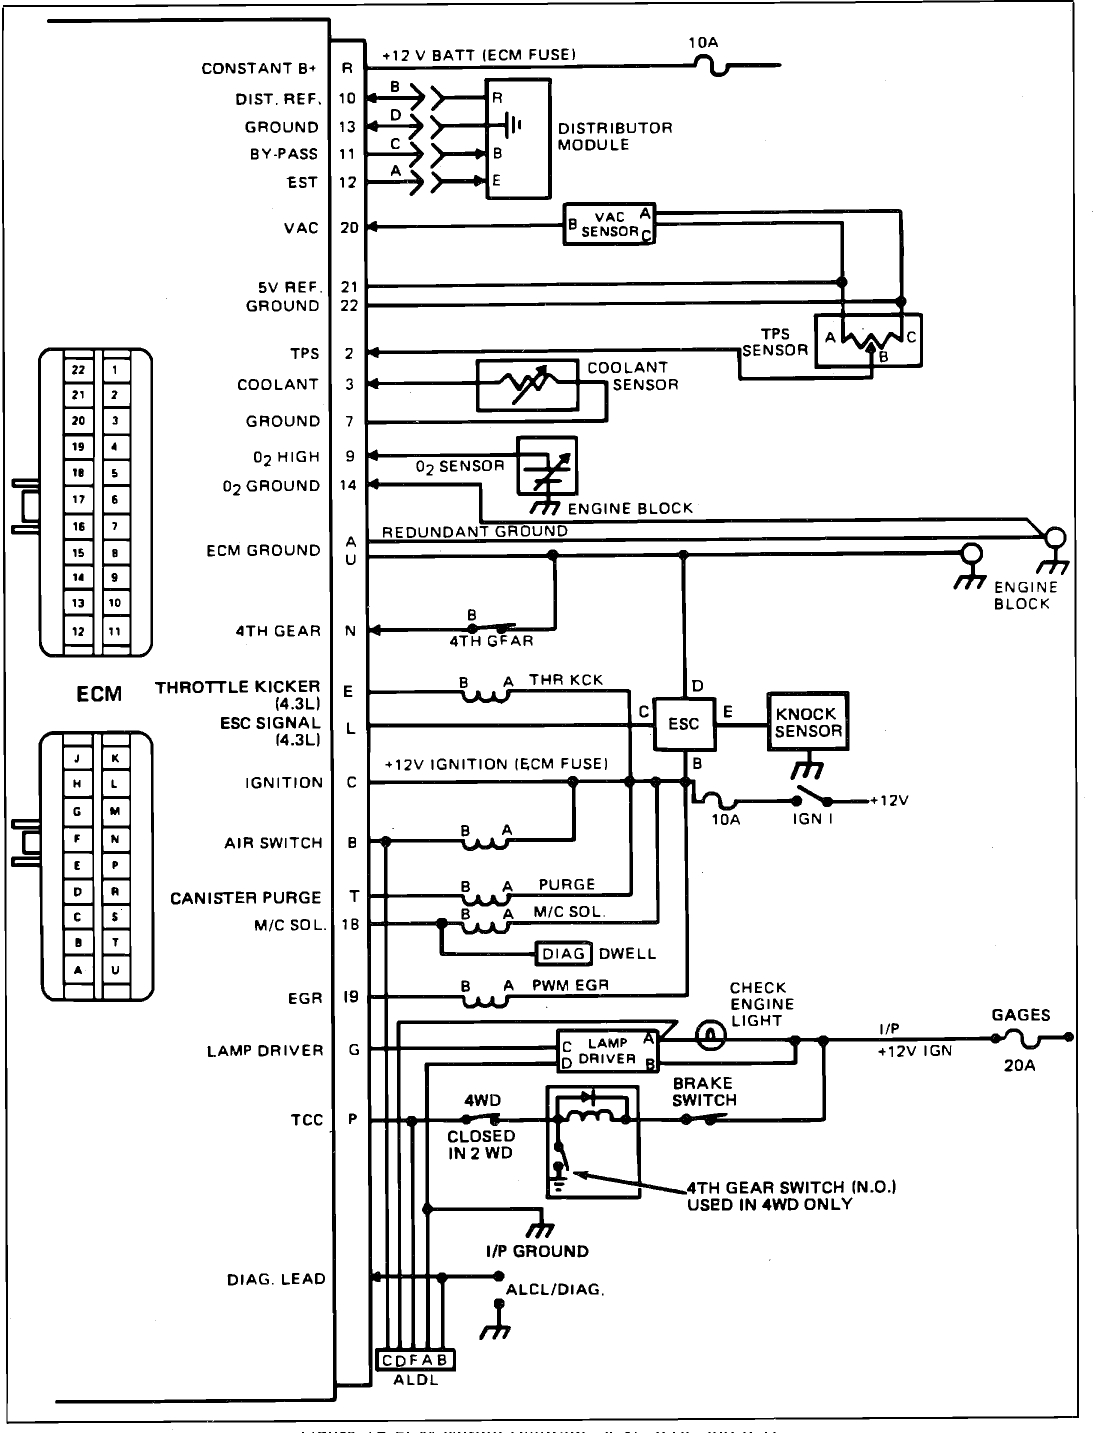 1988 chevy van fuse block diagram wiring diagram todays1984 chevrolet g20 fuse box diagram trusted wiring diagram online 57 chevy fuse block diagram 1988 chevy van fuse block diagram